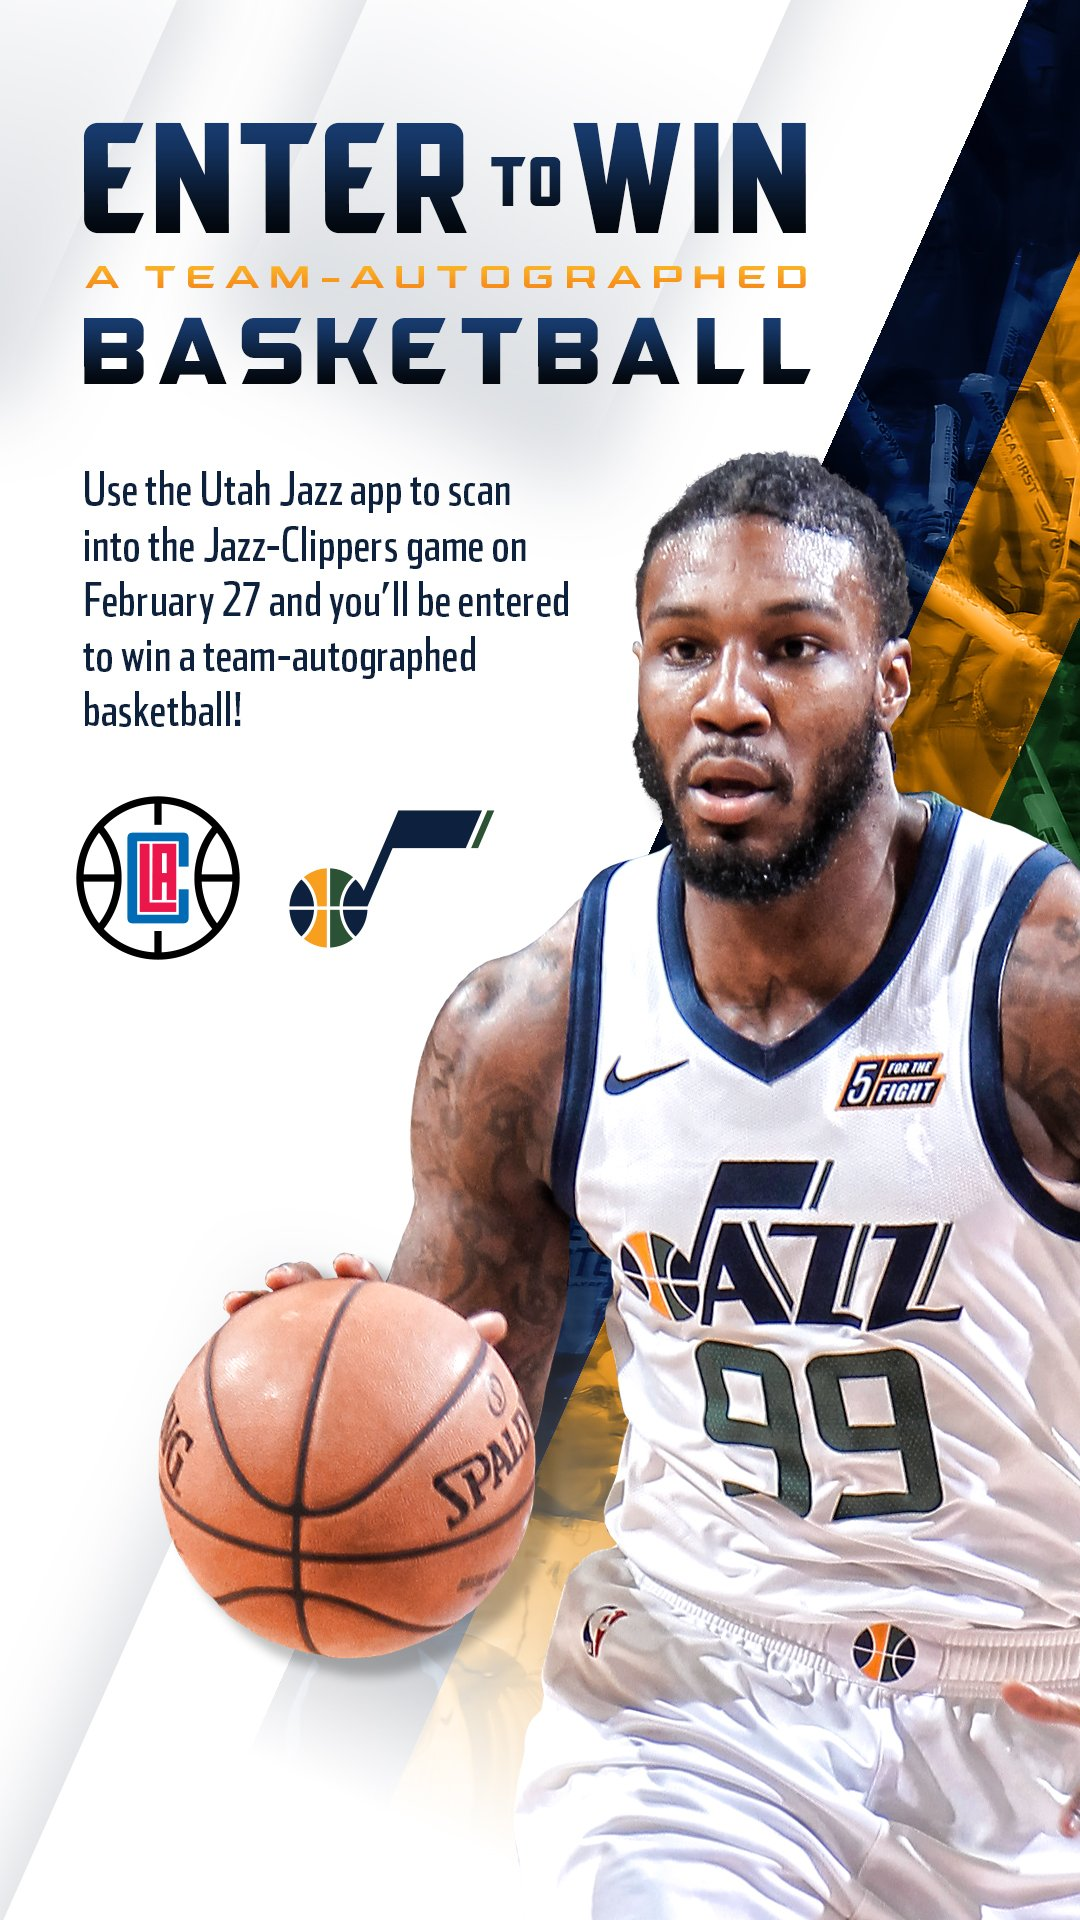 Utahjazz On Twitter Scan In To Win When You Enter Tonight S Game Against The Clippers At Vivintarena Using The Utah Jazz App You Will Be Automatically Entered To Win A